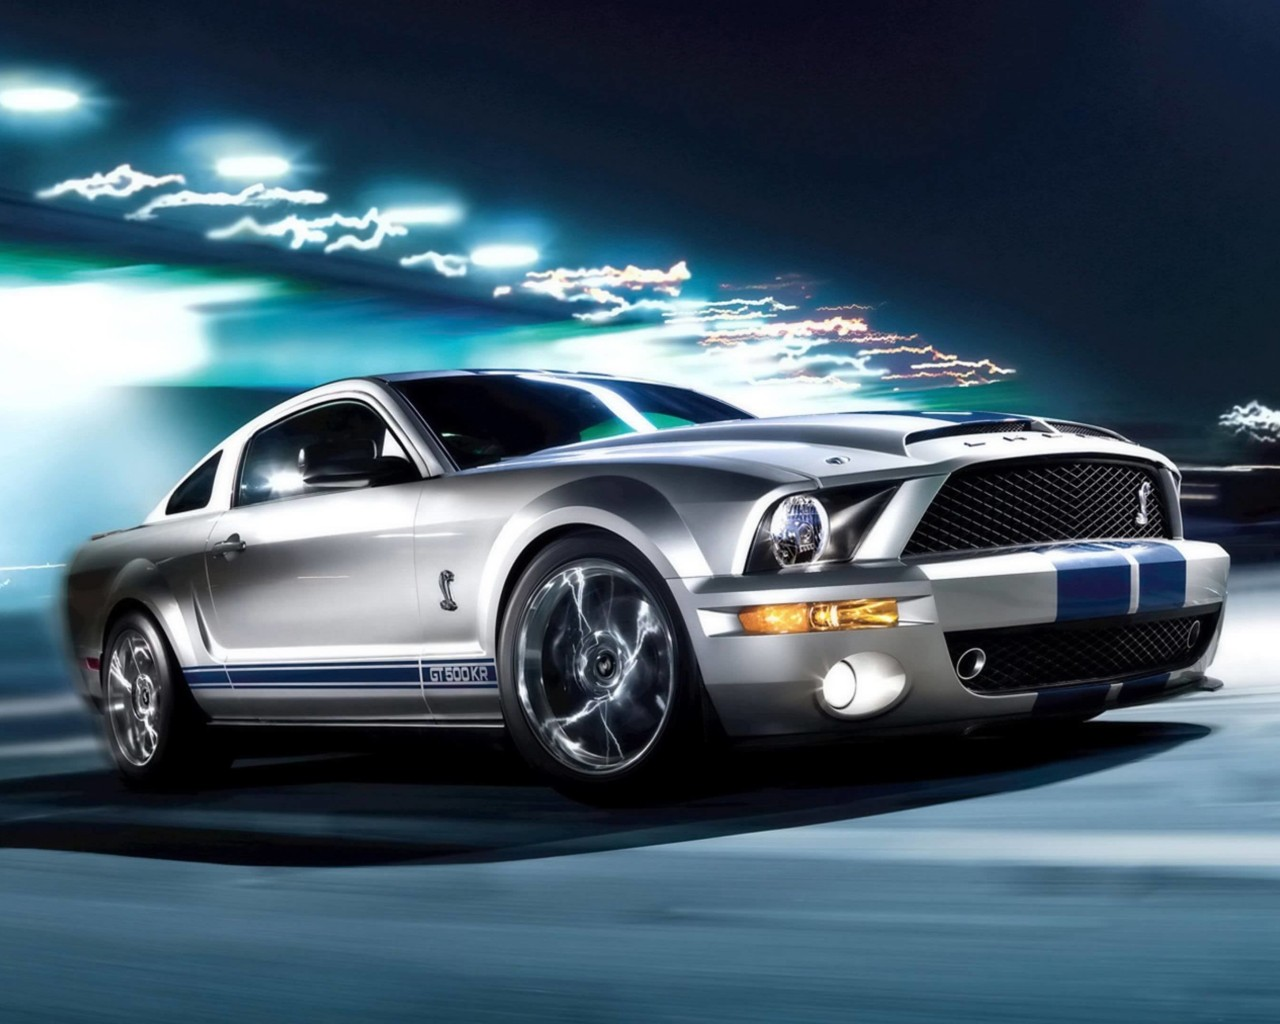 Ford Mustang Shelby GT500KR Wallpaper for Desktop 1280x1024